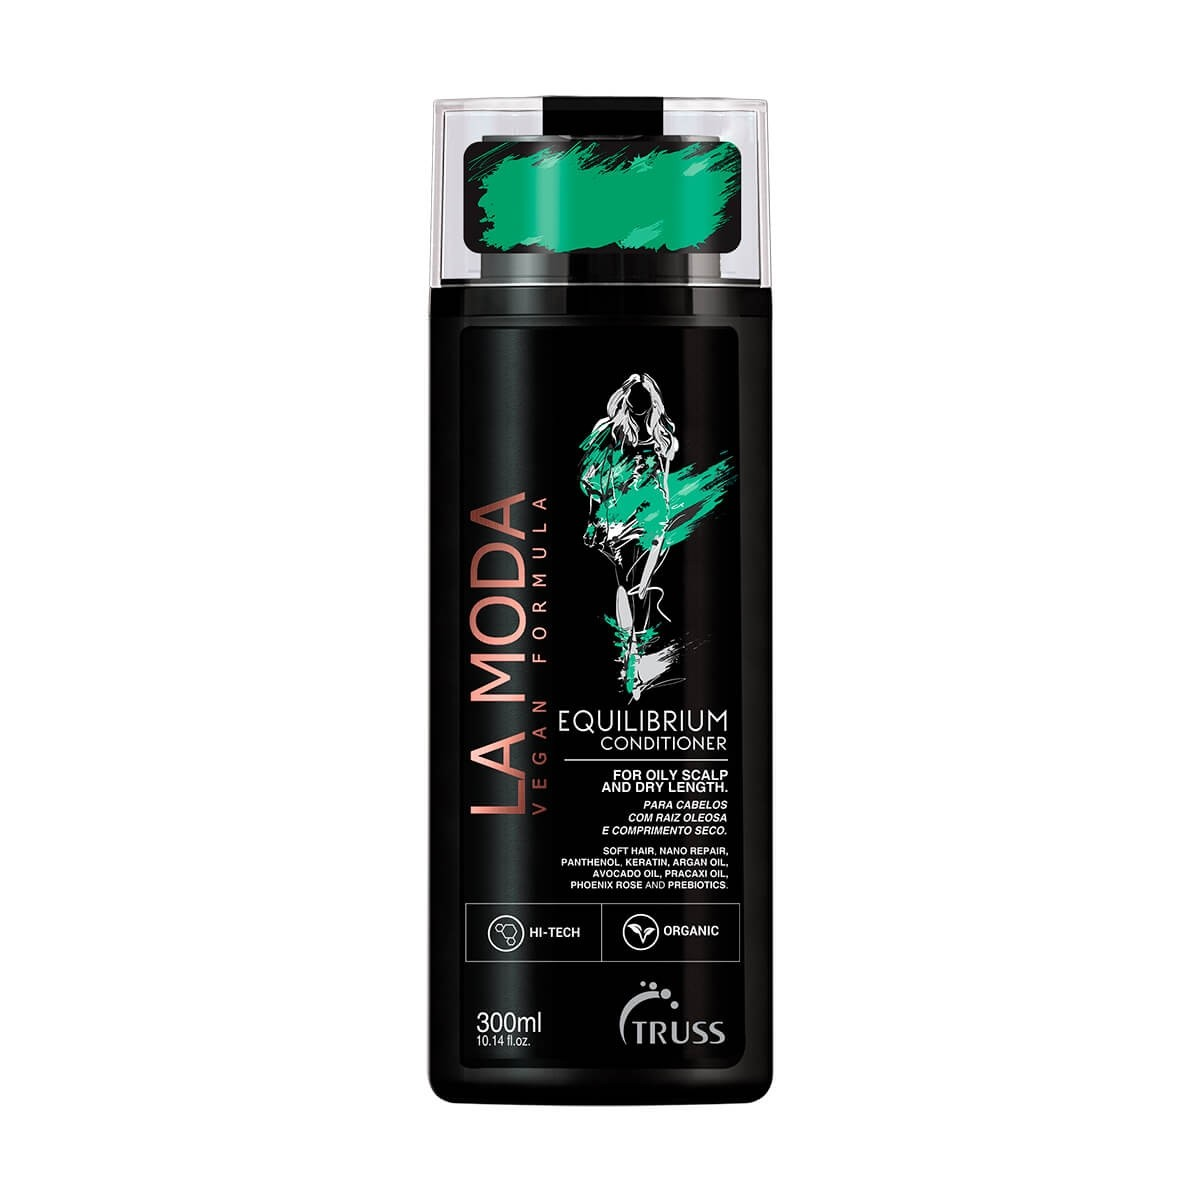 Condicionador Equilibrium LA MODA Truss 300ml